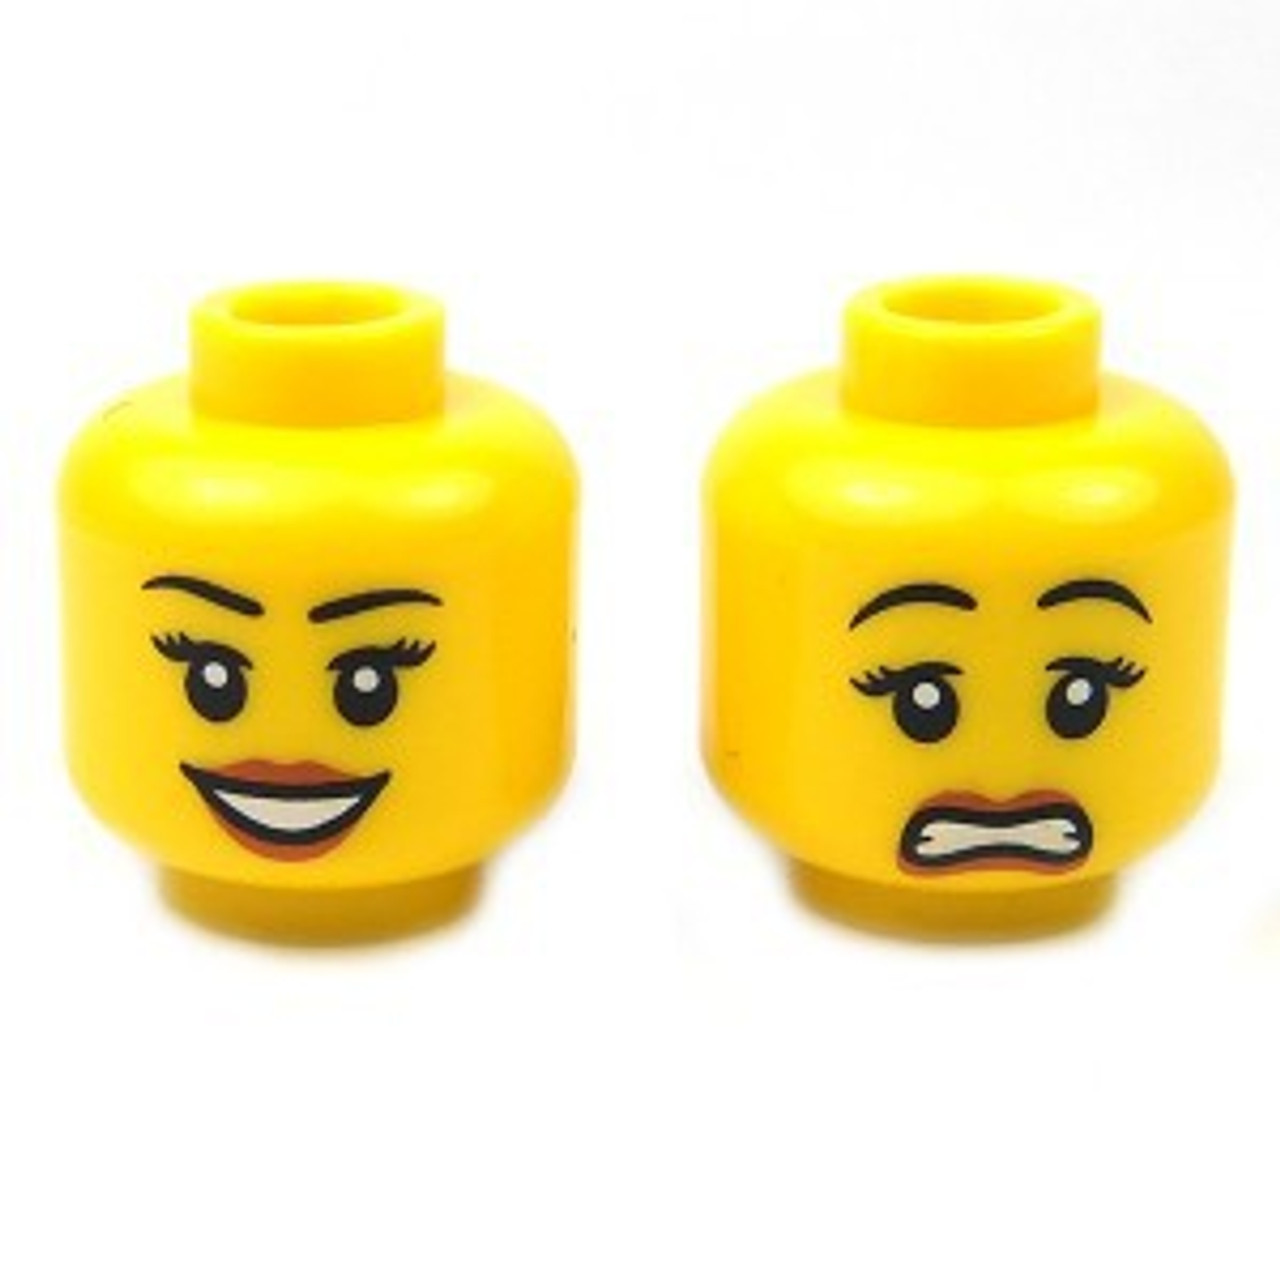 Lego New Minifigure Head Female with Open Smile Red Lips and Beauty Mark Girl